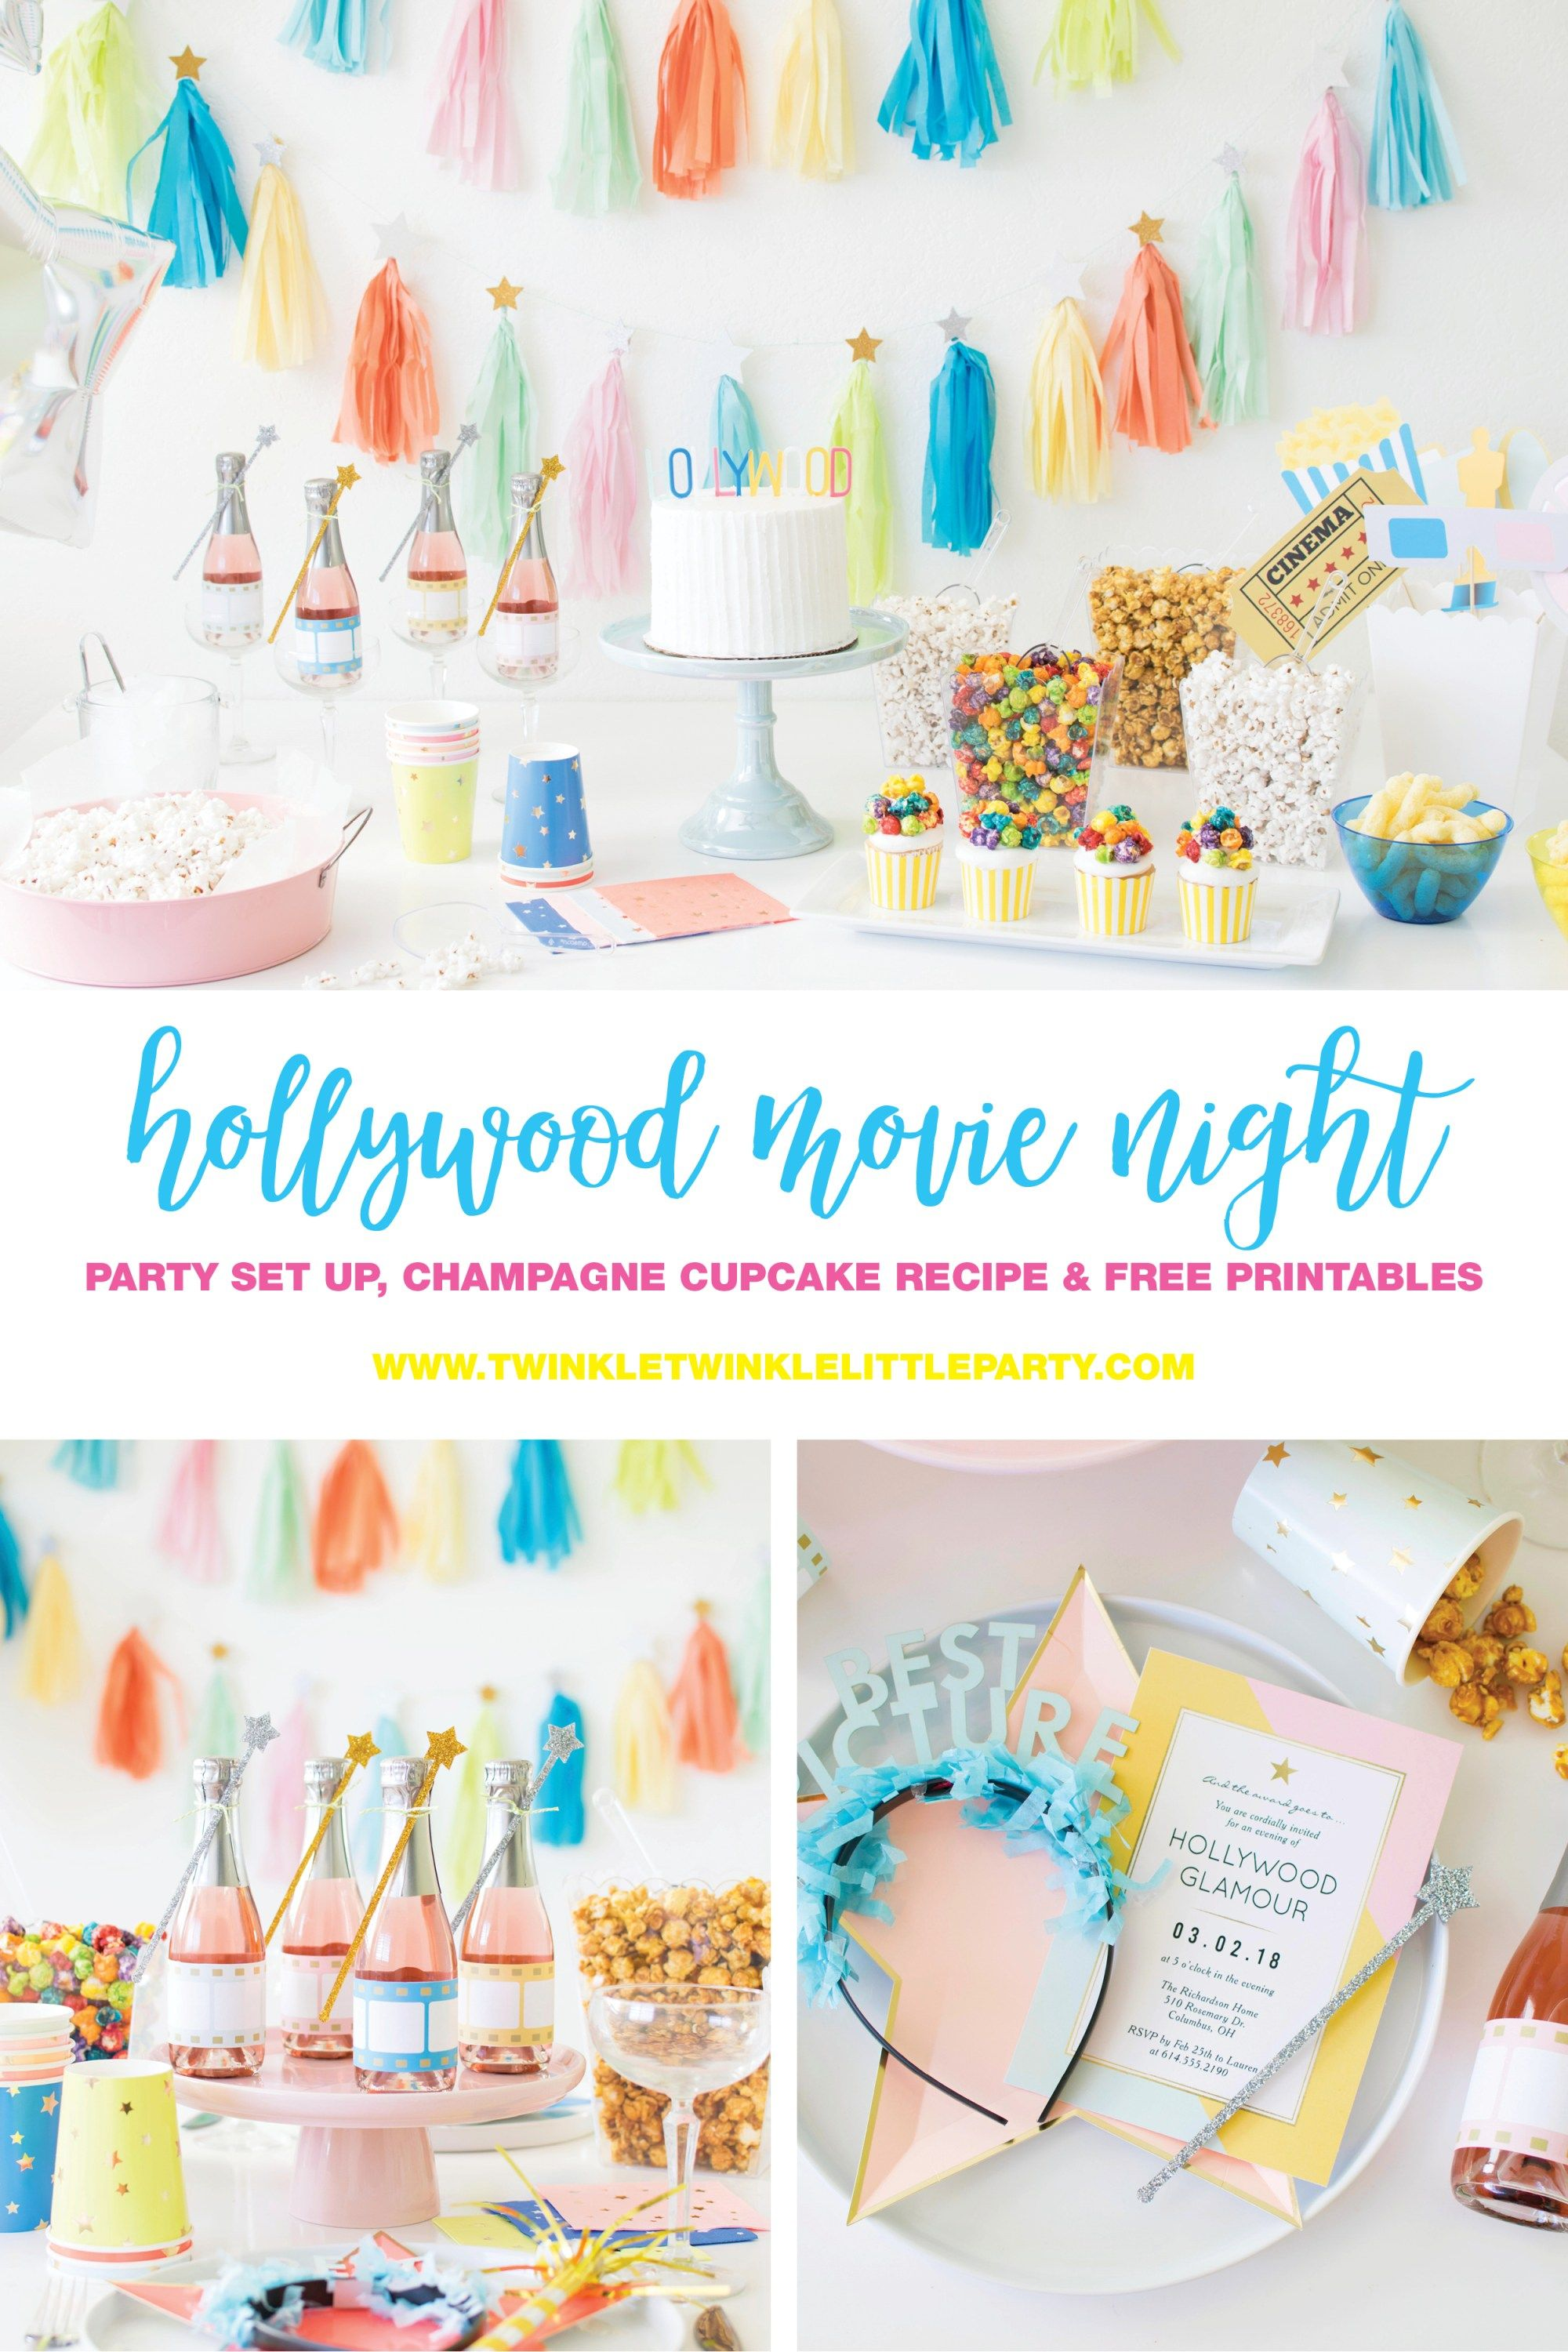 Host a Hollywood Inspired Movie Night Party for the Oscars Night ...